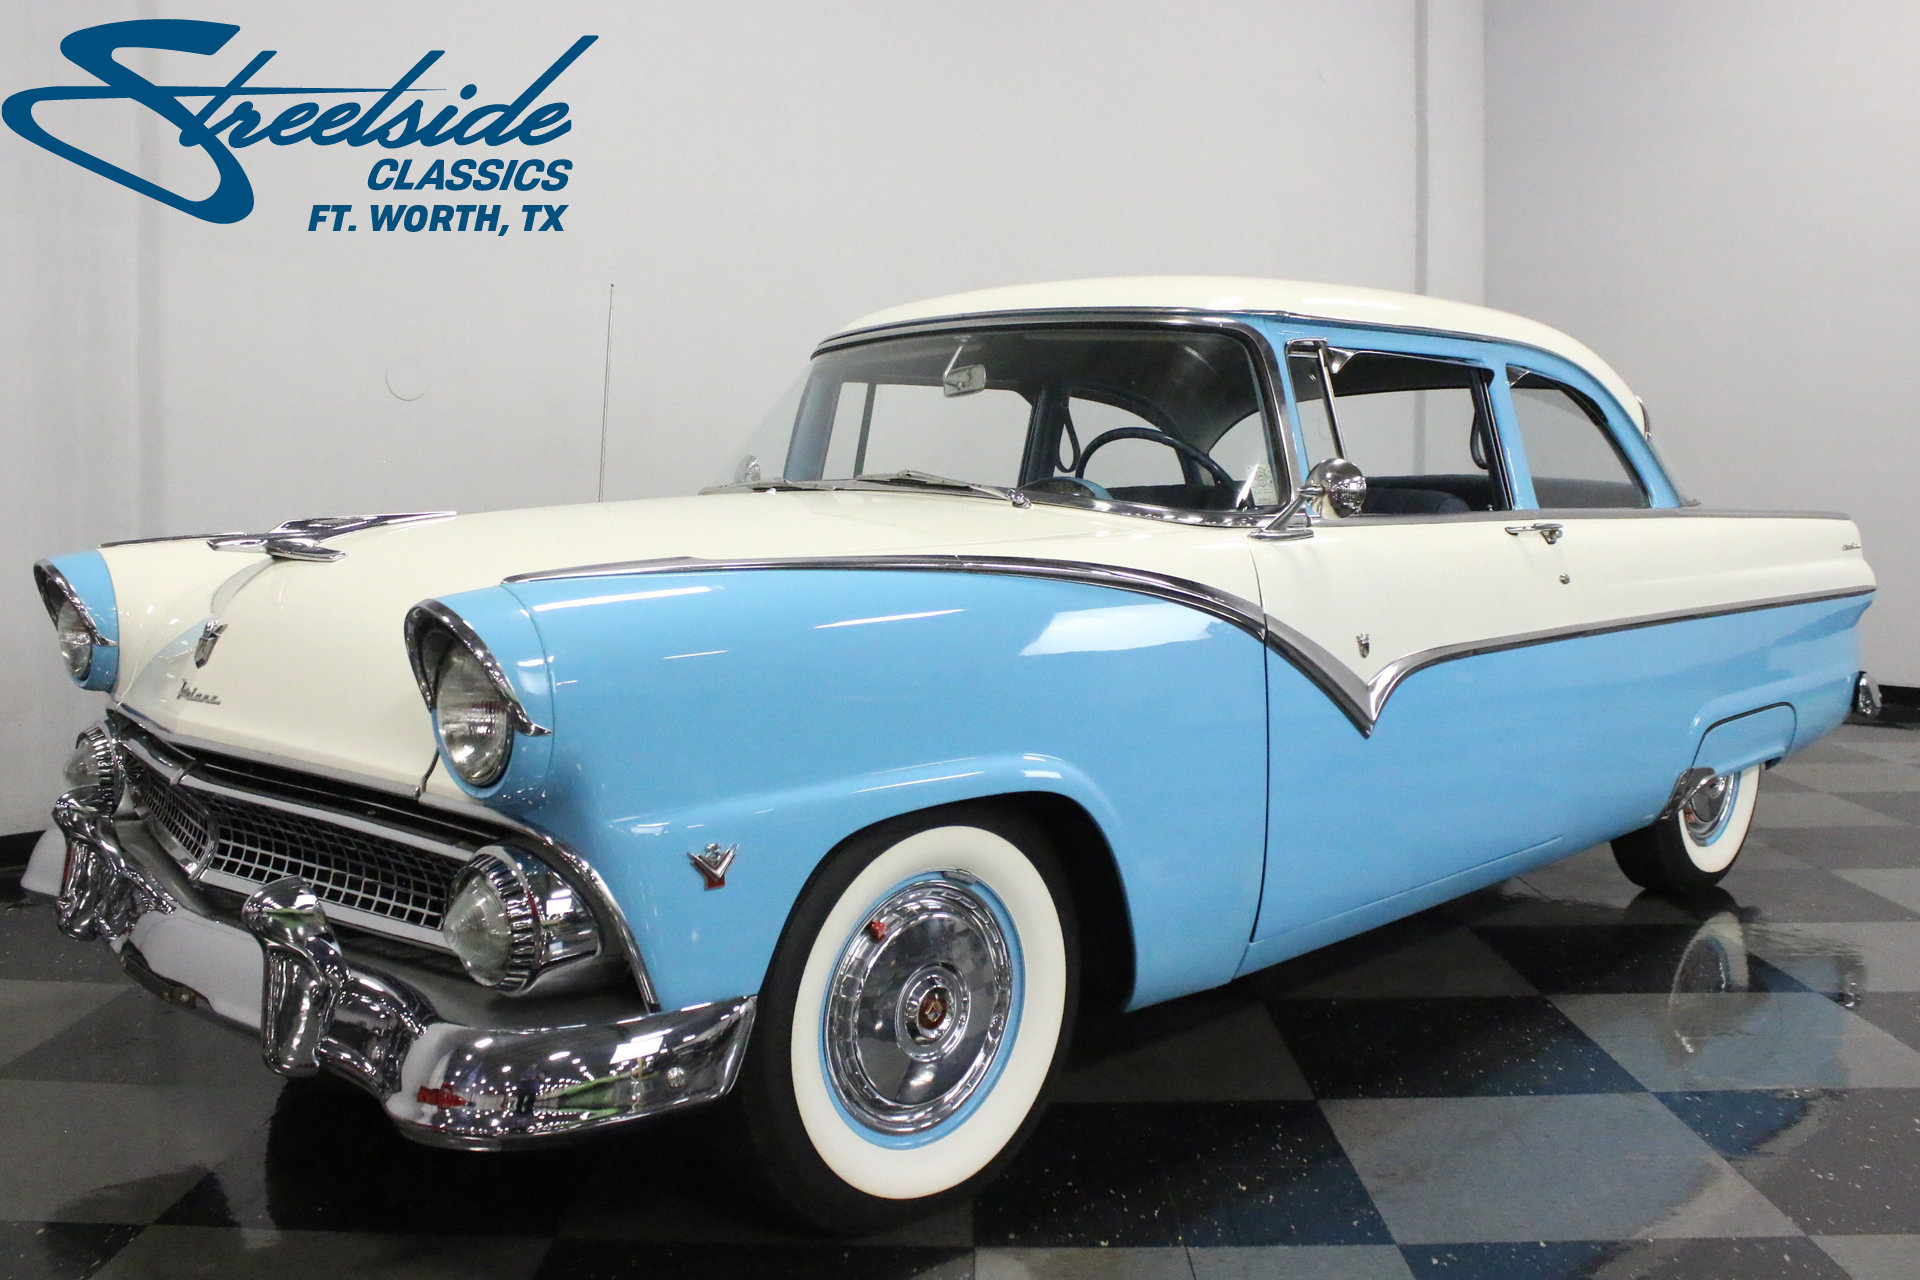 Chevy Dealer Tampa >> 1955 Ford Fairlane | Streetside Classics - The Nation's Trusted Classic Car Consignment Dealer